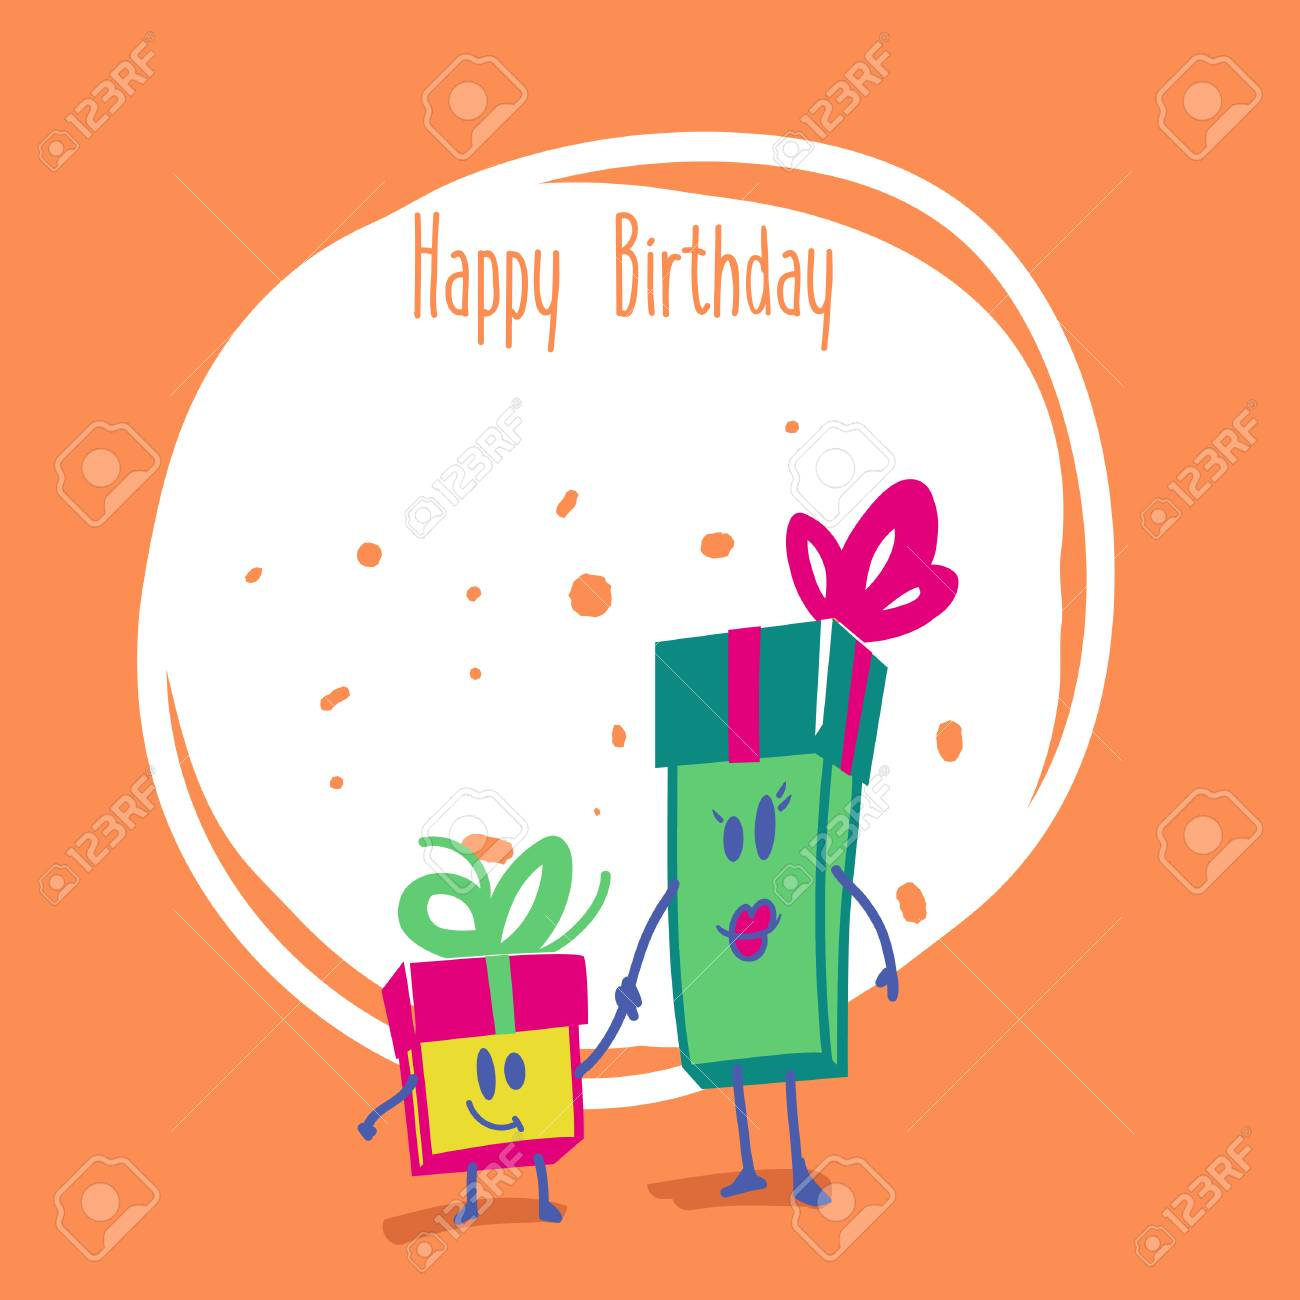 Happy Birthday Vector Birthday Card With Funny Gift Boxes Royalty